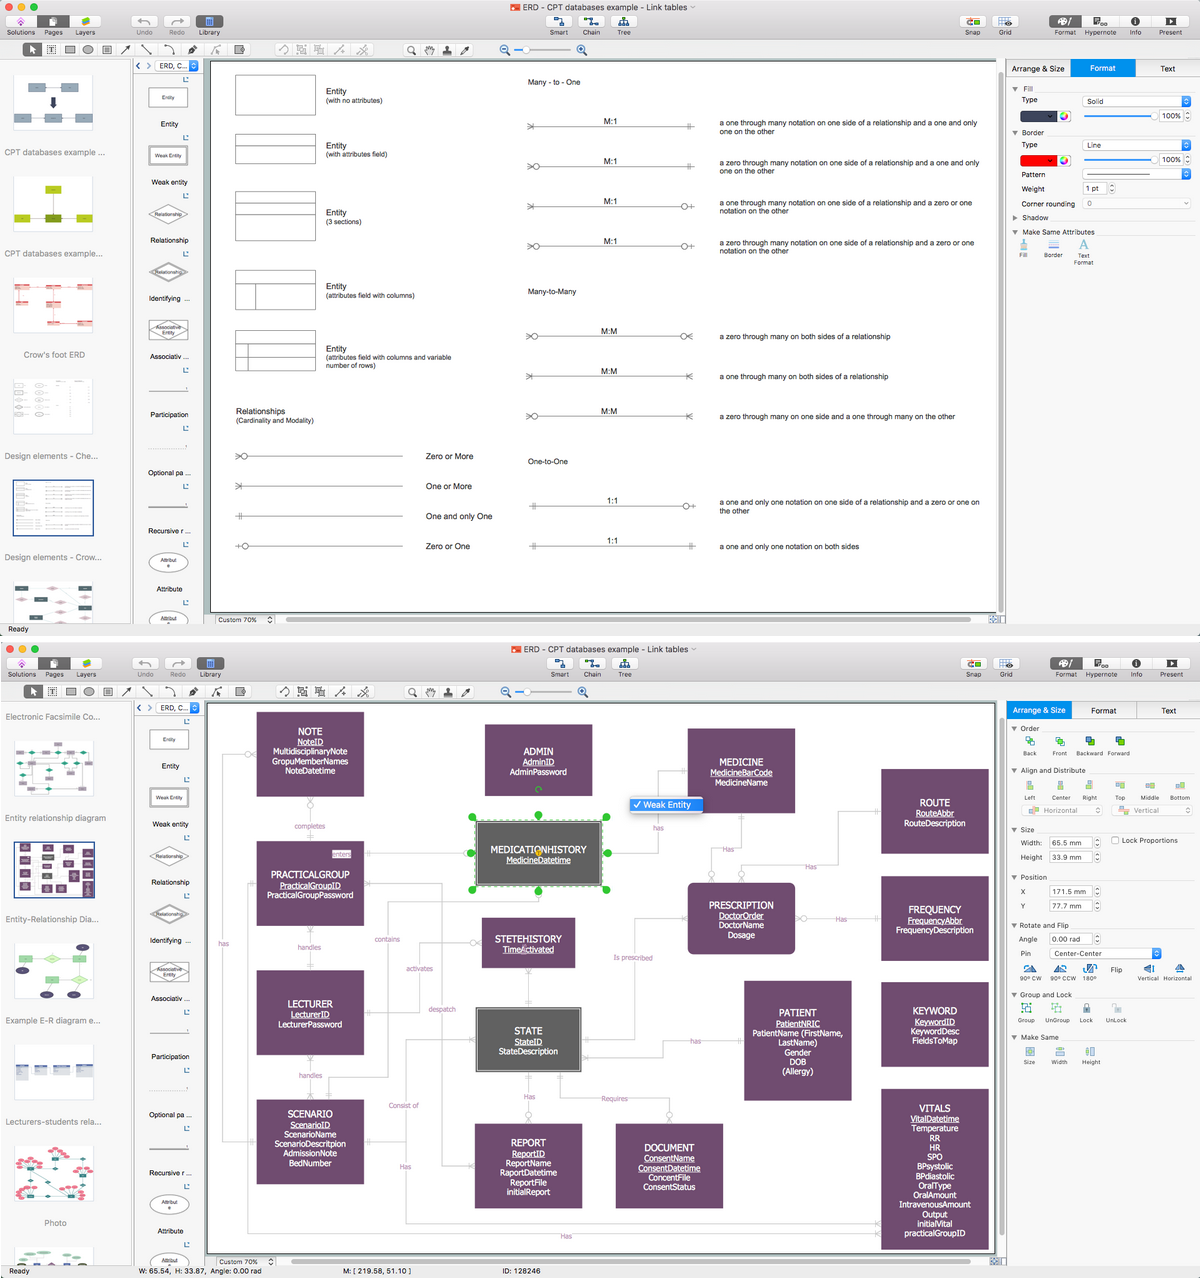 Entity Relationship Diagram Software for Mac | Professional ERD ...